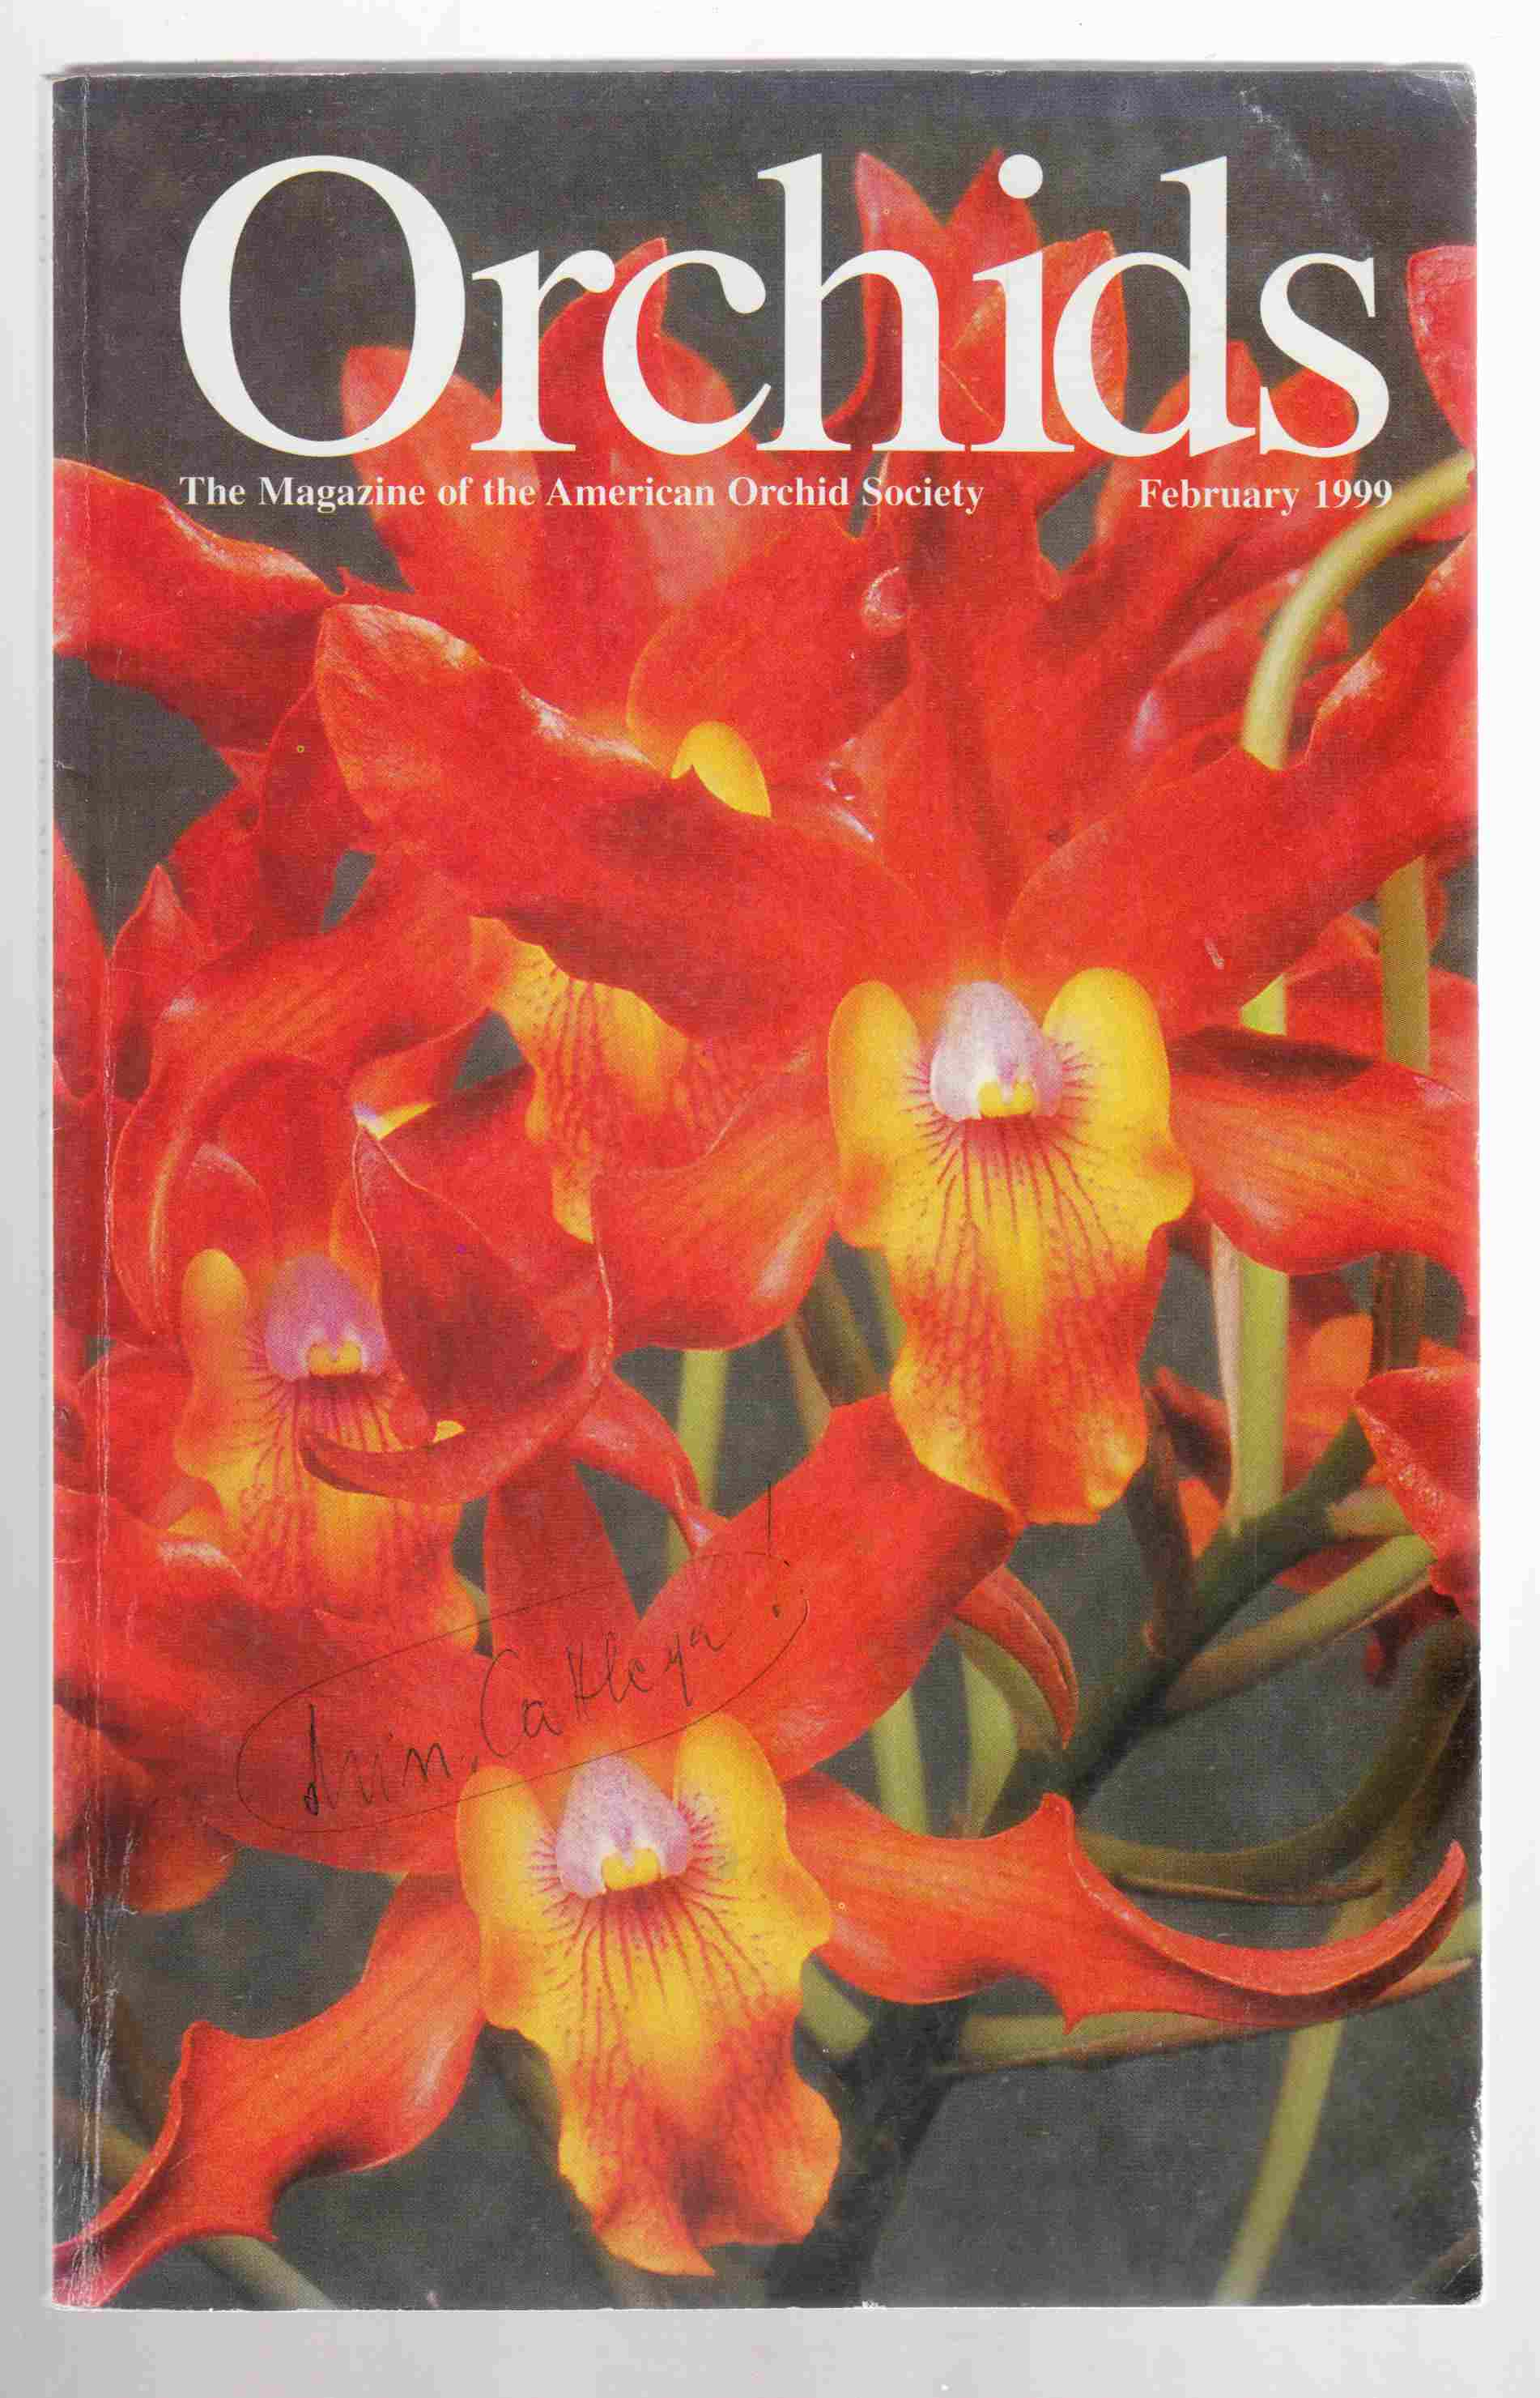 Image for Orchids Vol. 68, No. 2, February 1999